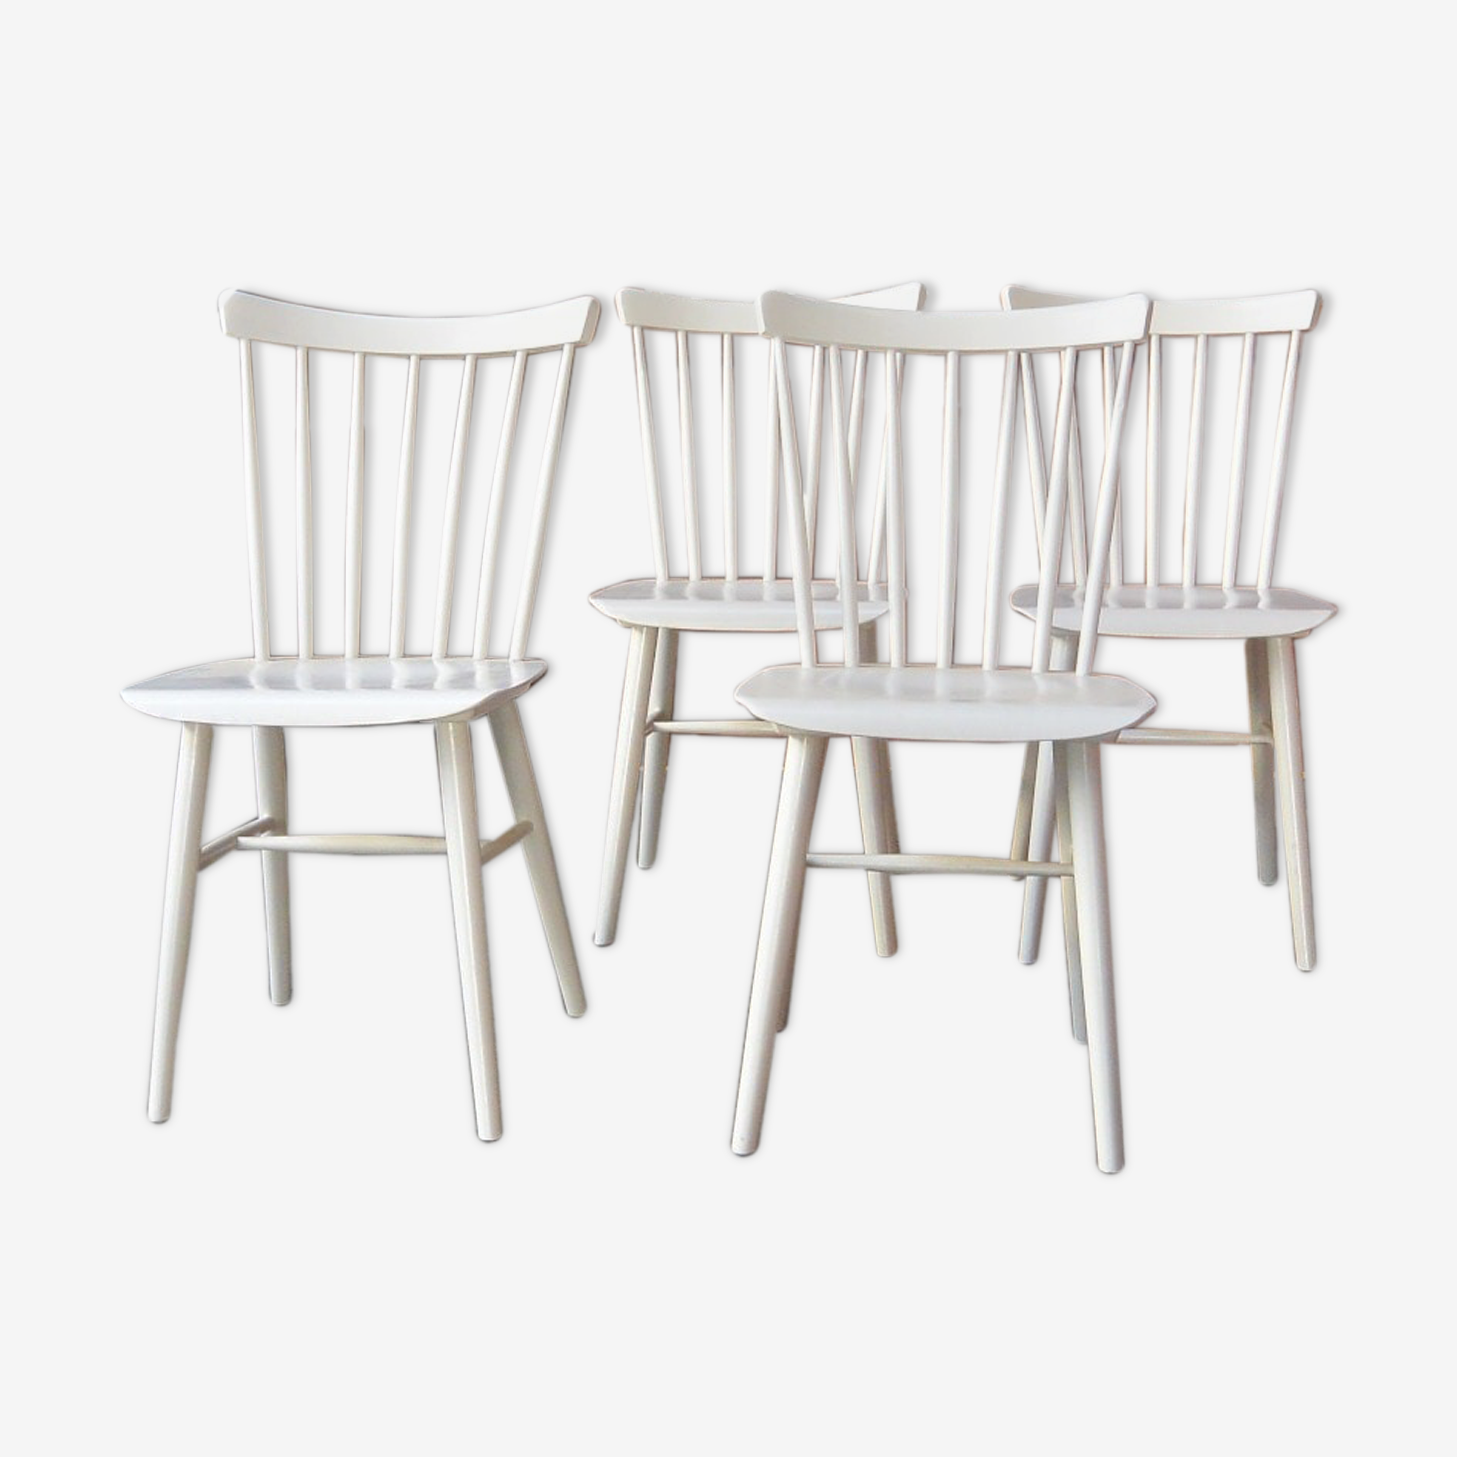 Set of 4 chairs in bars